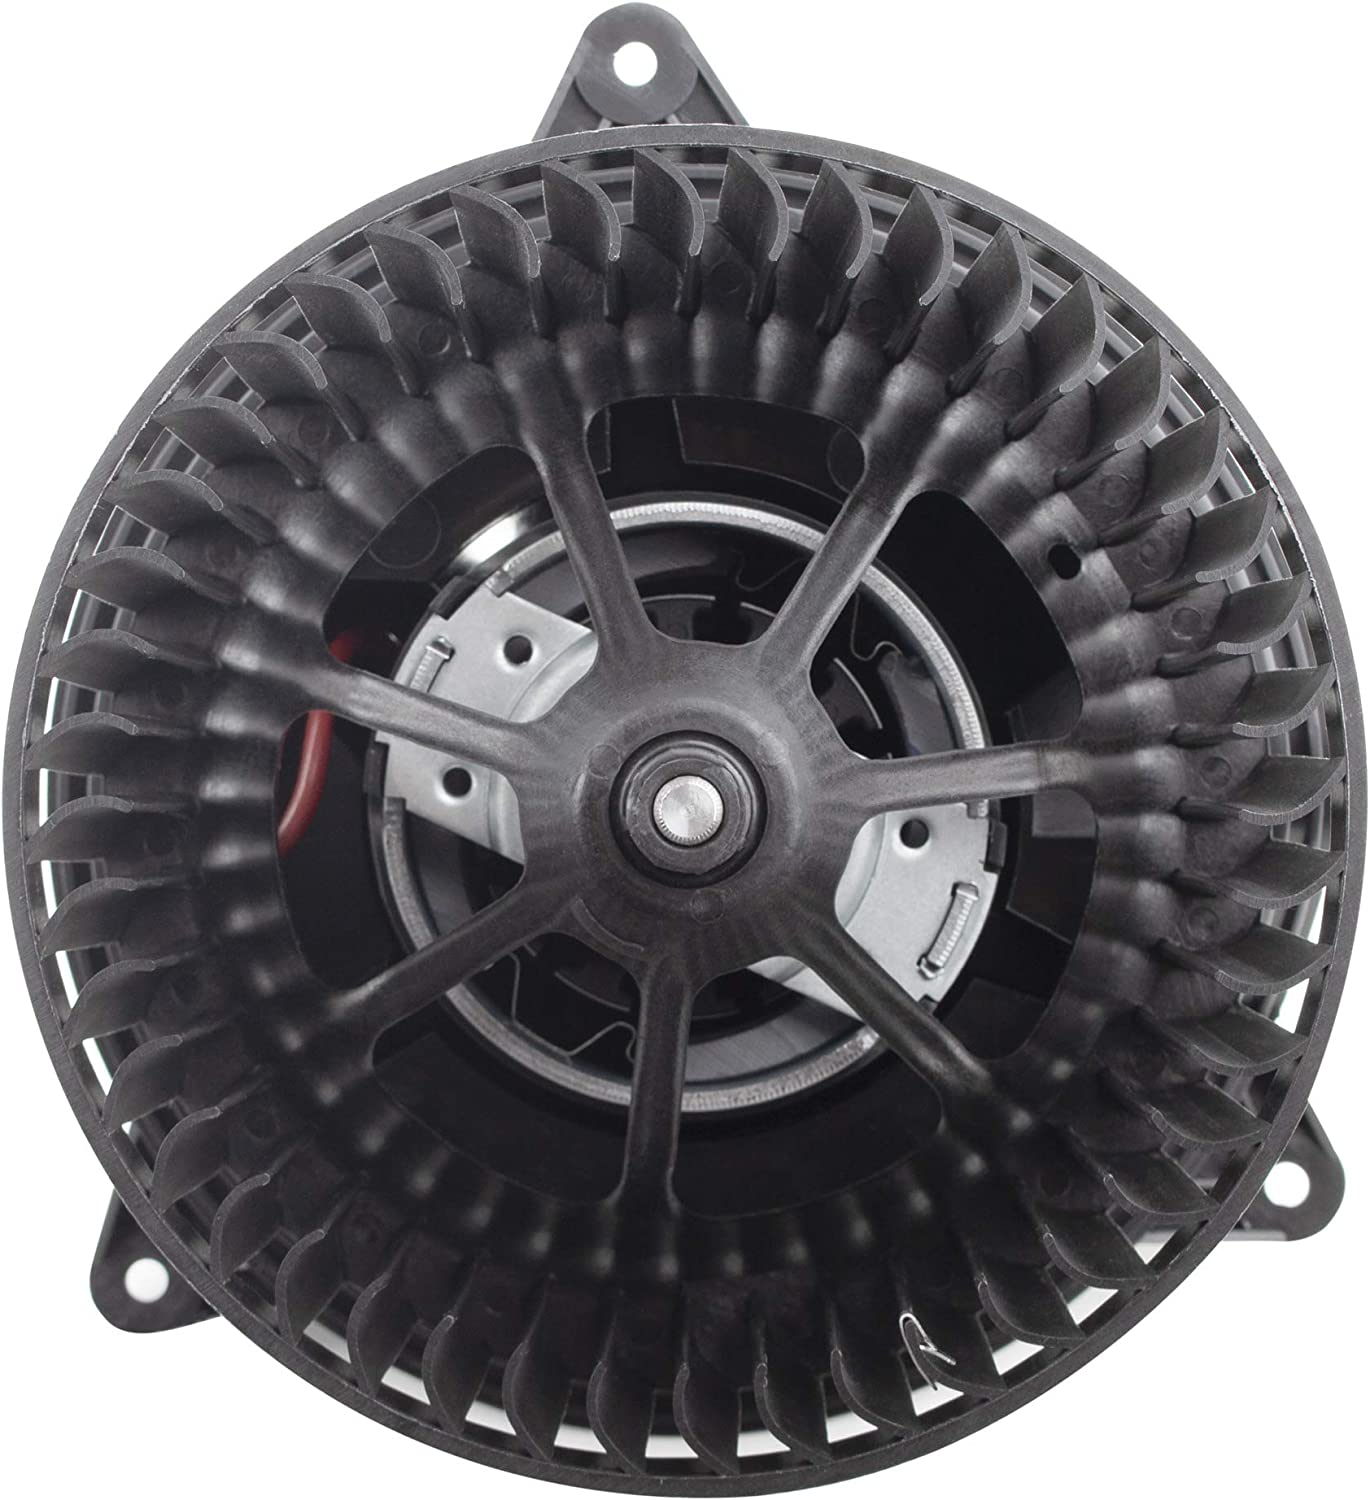 BOXI Blower Motor Fan Assembly for 2010-2013 Ford Transit Connect, 2000-2007 Ford Focus, 2002-2008 Jaguar X-Type, YS4Z19805AB, 2T1Z18568A